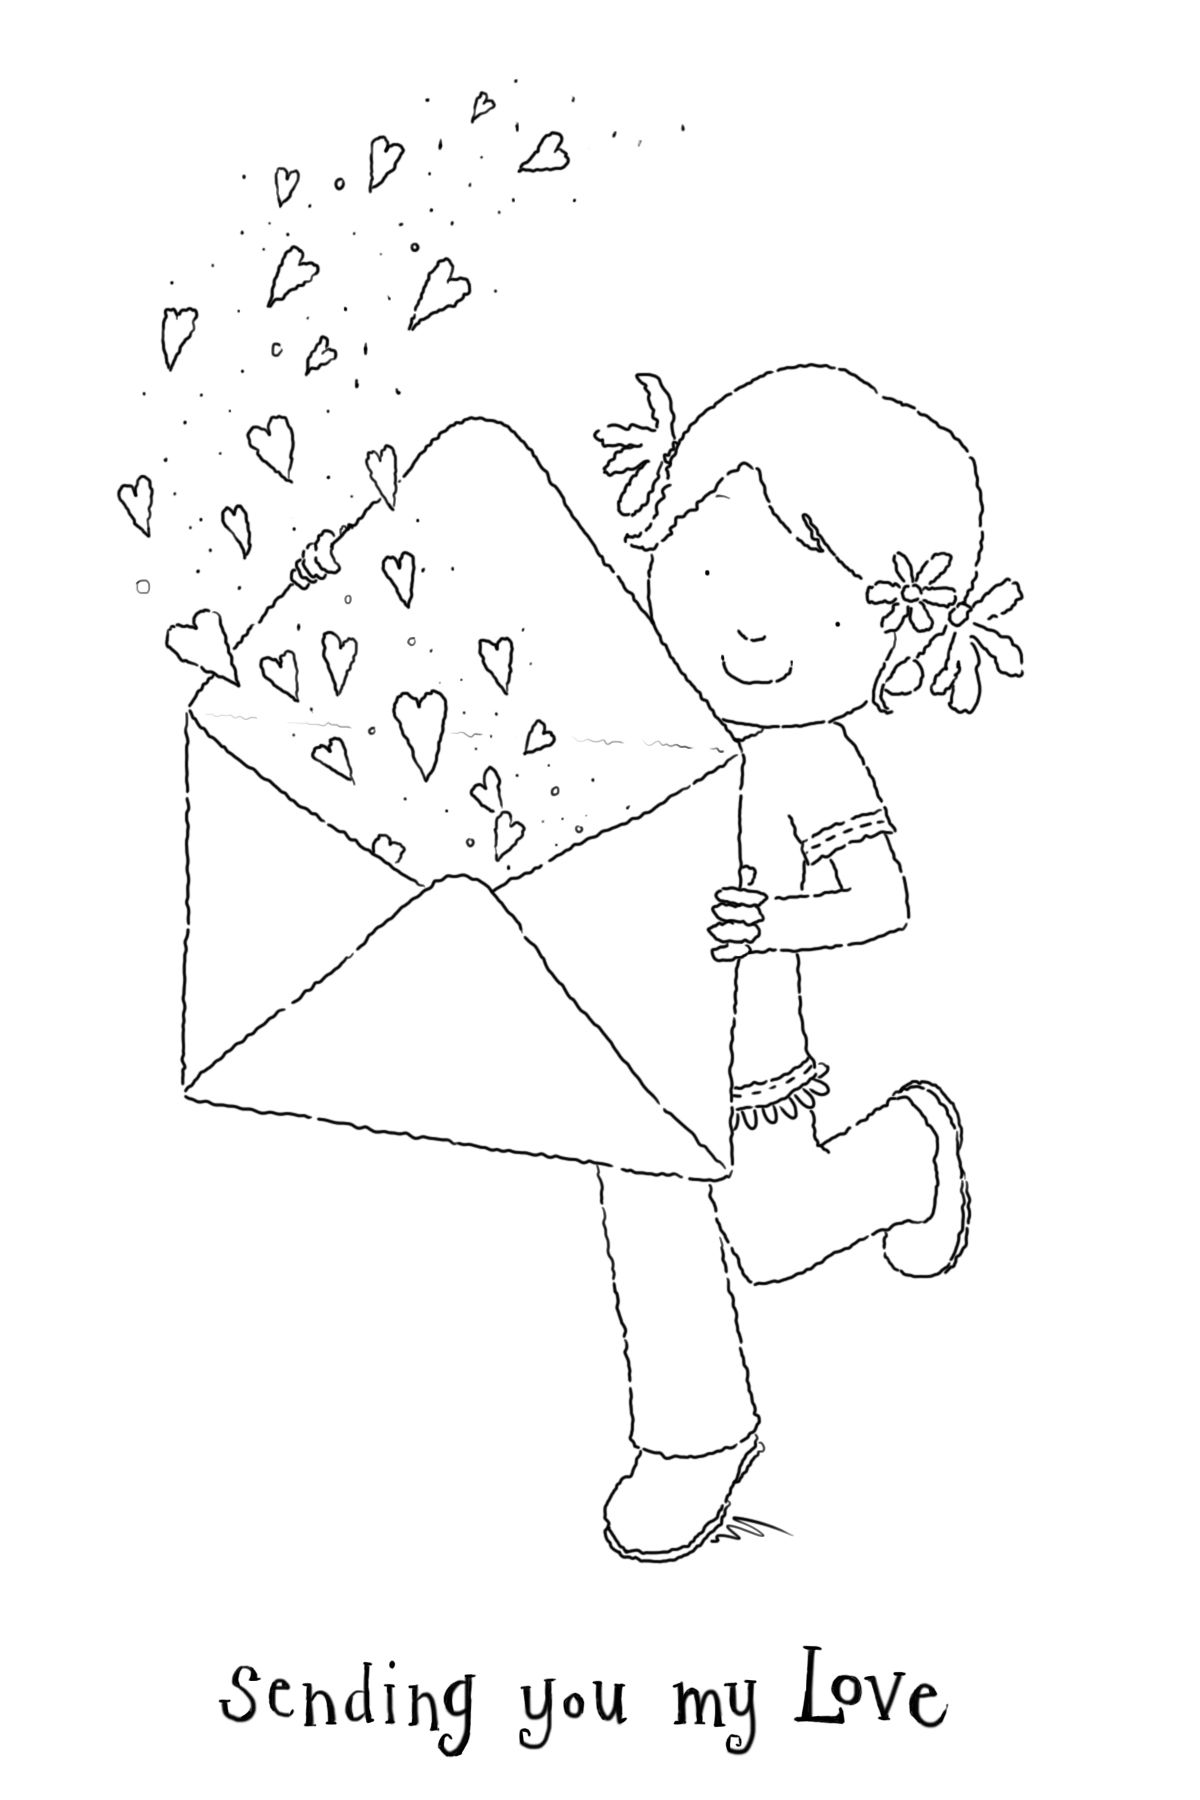 Download your Jellypark digital stamps FREE with Simply